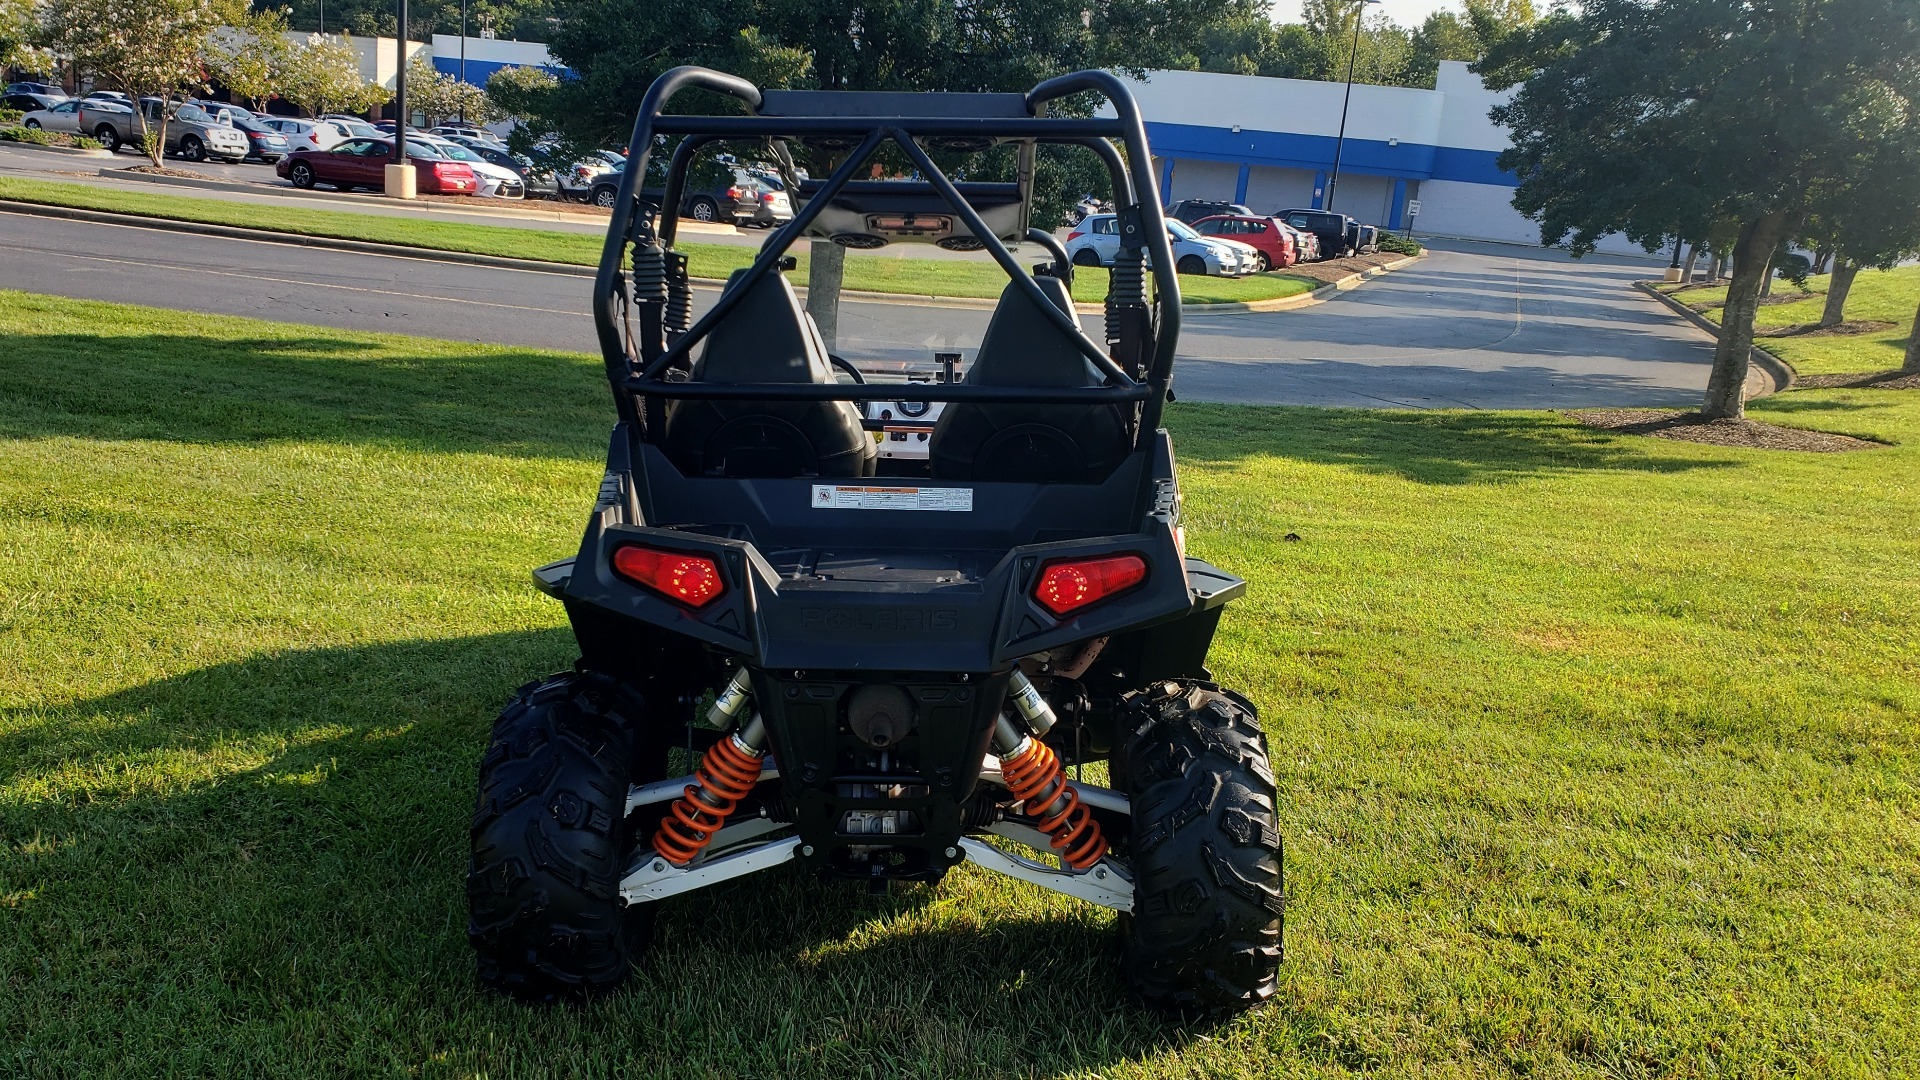 Used 2012 POLARIS RANGER RZR4 / HO 800 EFI / IPHONE CONNECT / SPEAKERS / NEW TIRES for sale Sold at Formula Imports in Charlotte NC 28227 15